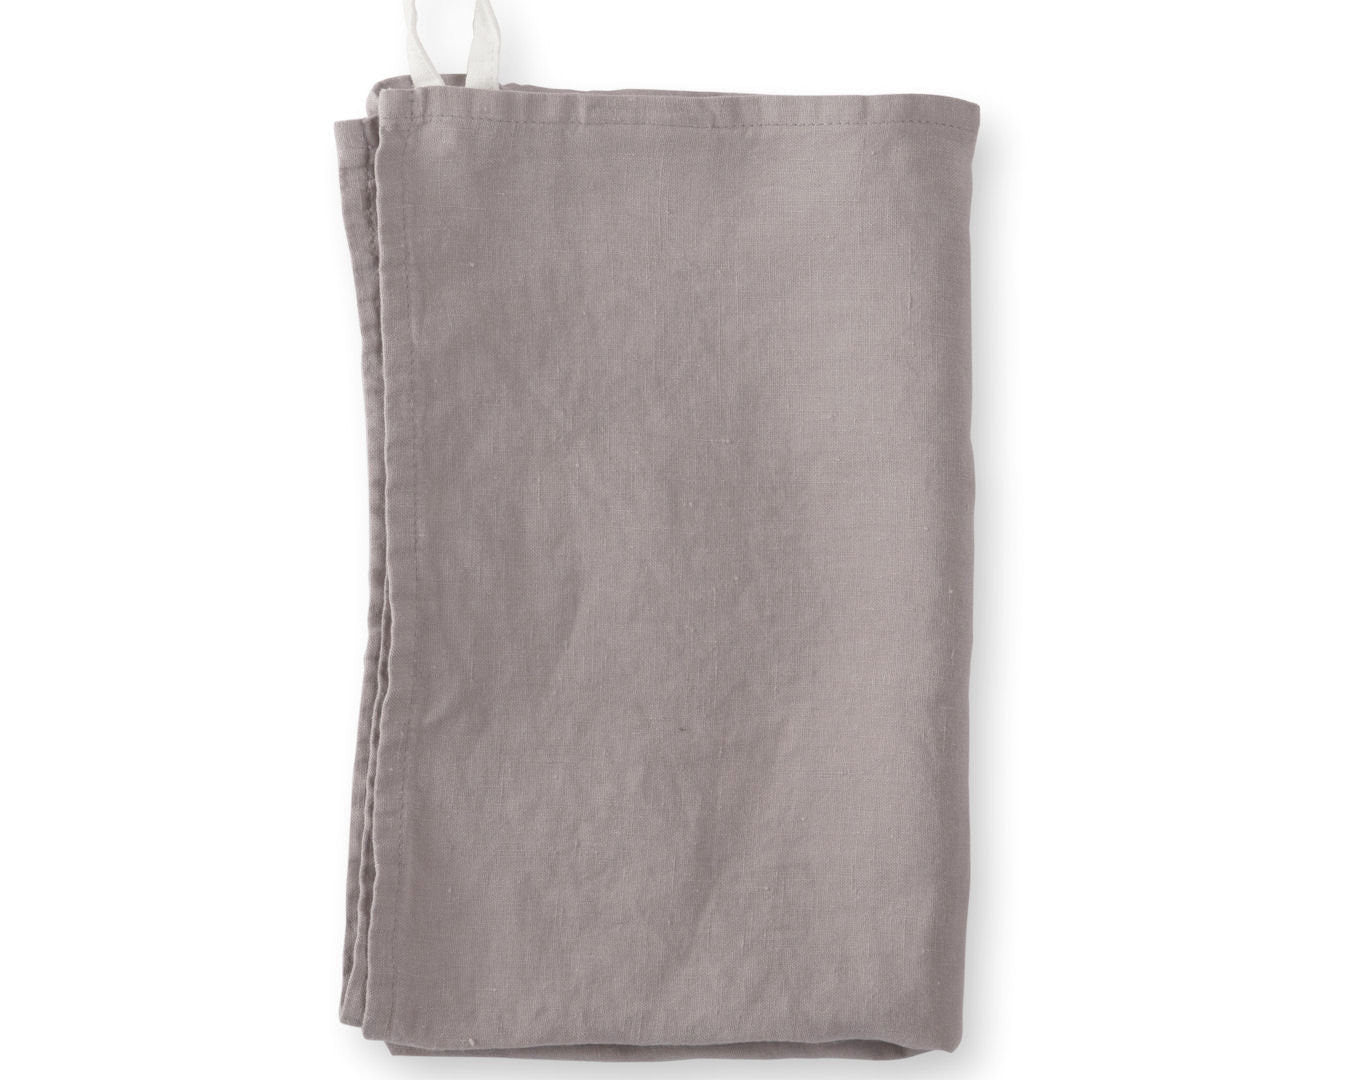 Linen Hand Towels - Parisian Blue, Rose & Taupe (set of 3)